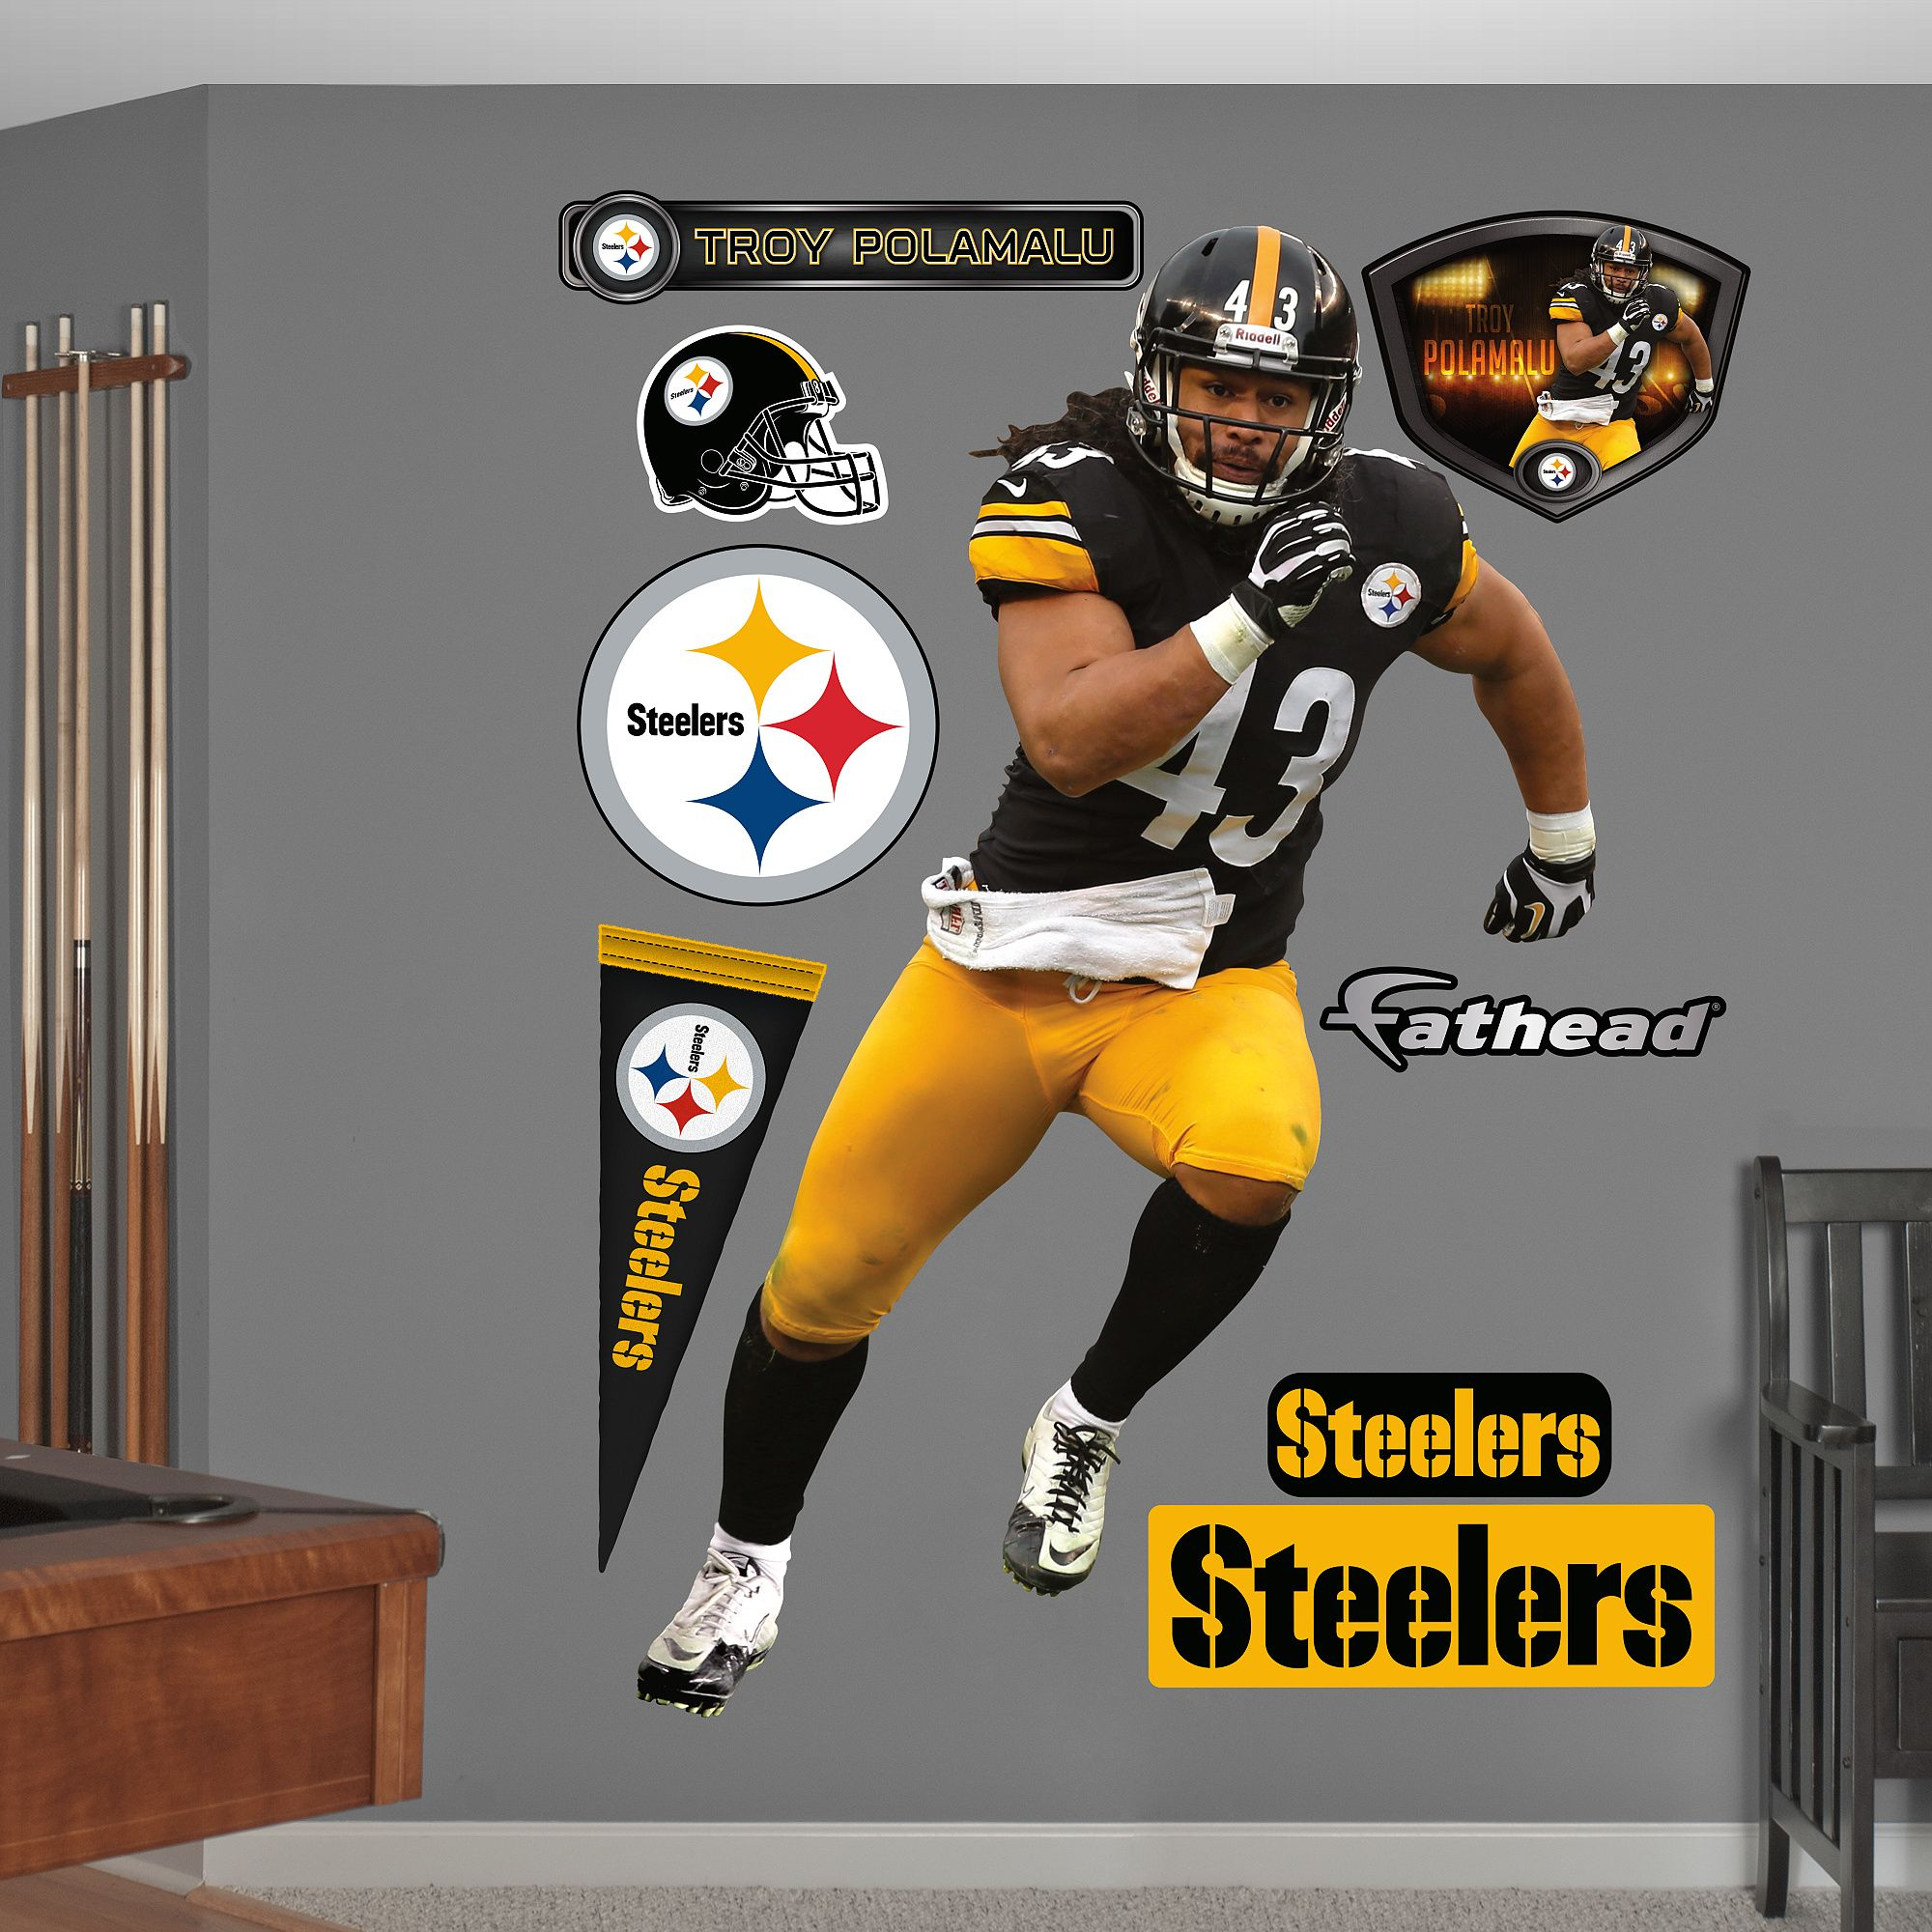 da65baa3 Troy Polamalu - 2012, Pittsburgh Steelers #Steelers | Pittsburgh ...